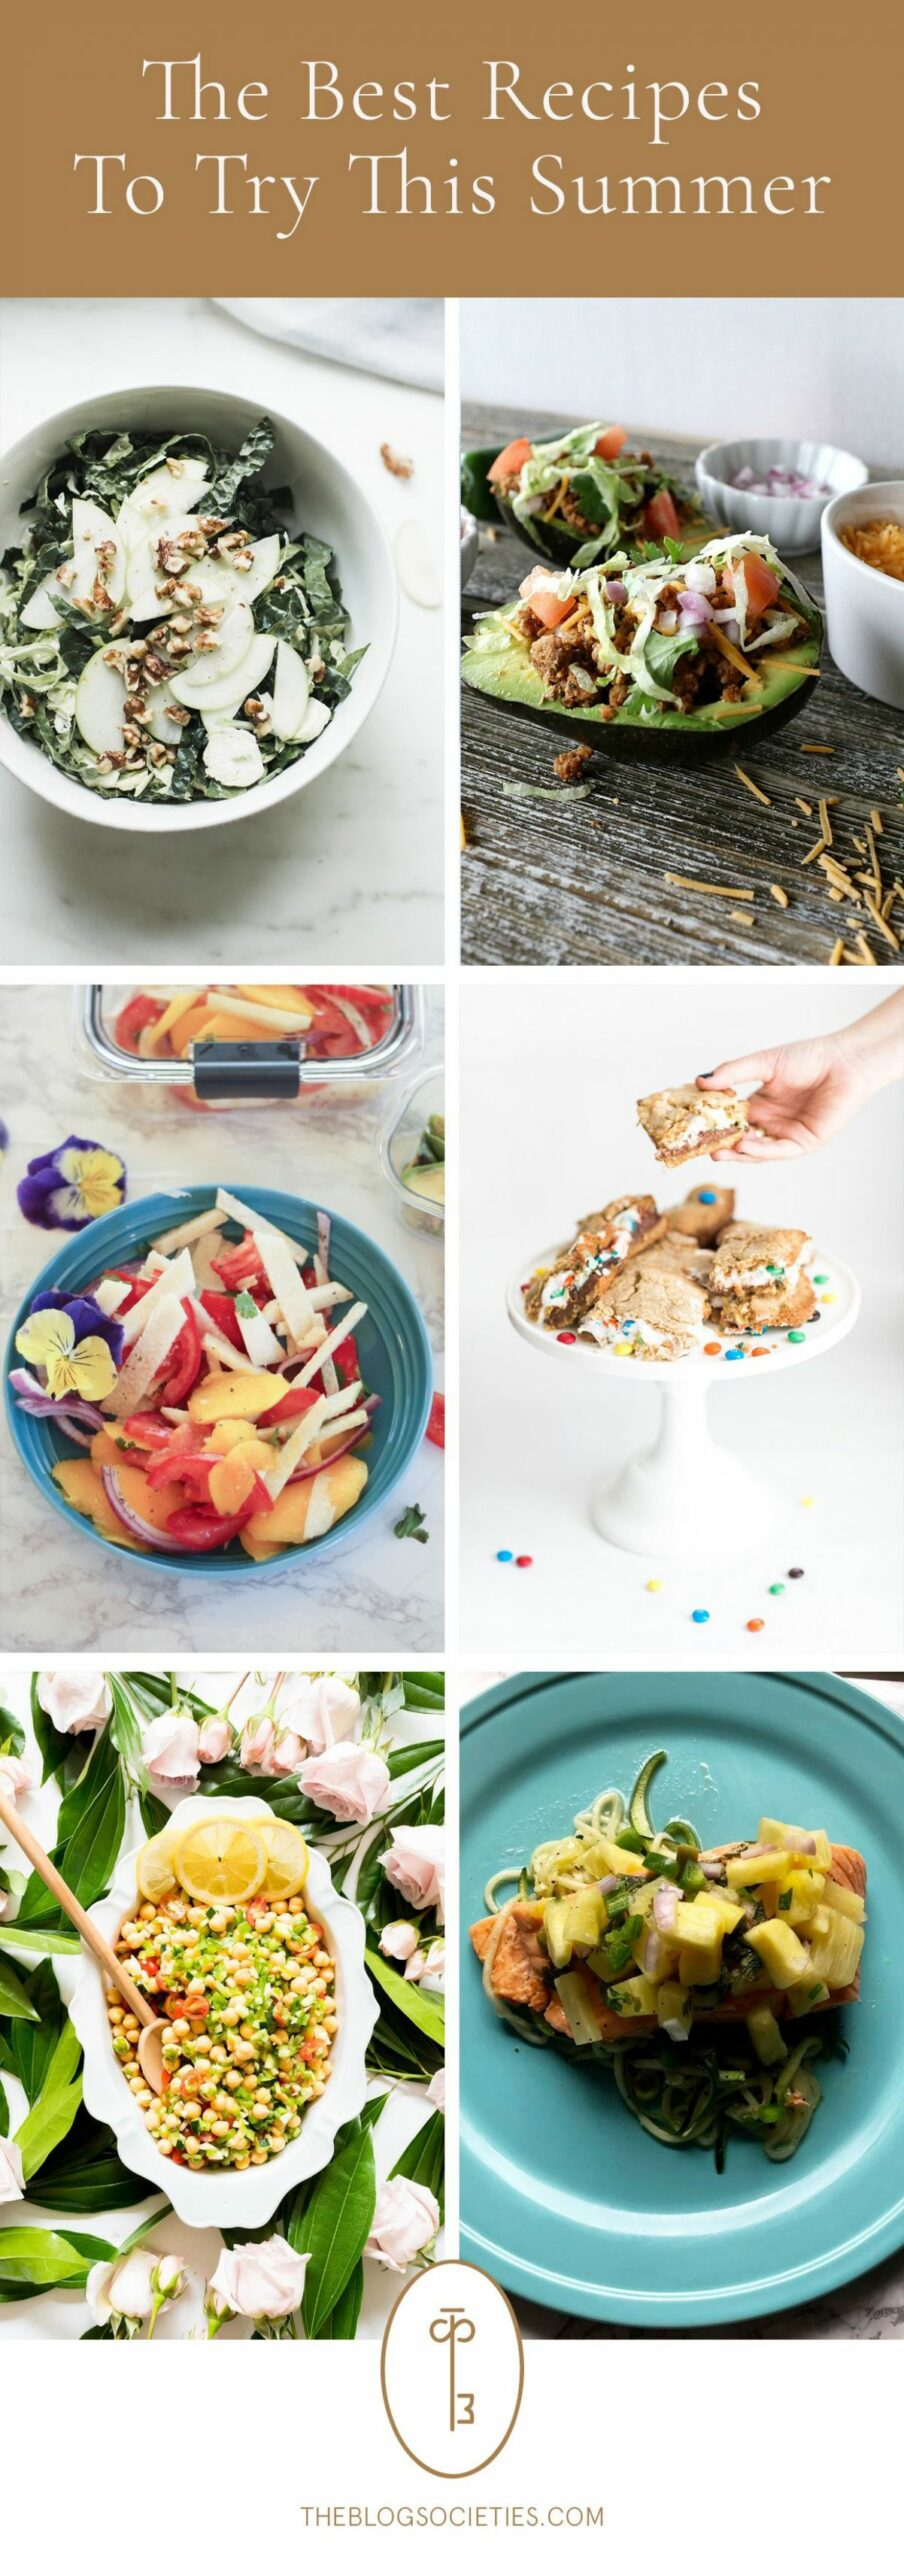 Delicious Summer Recipes To Try - The Blog Societies   Summer ..